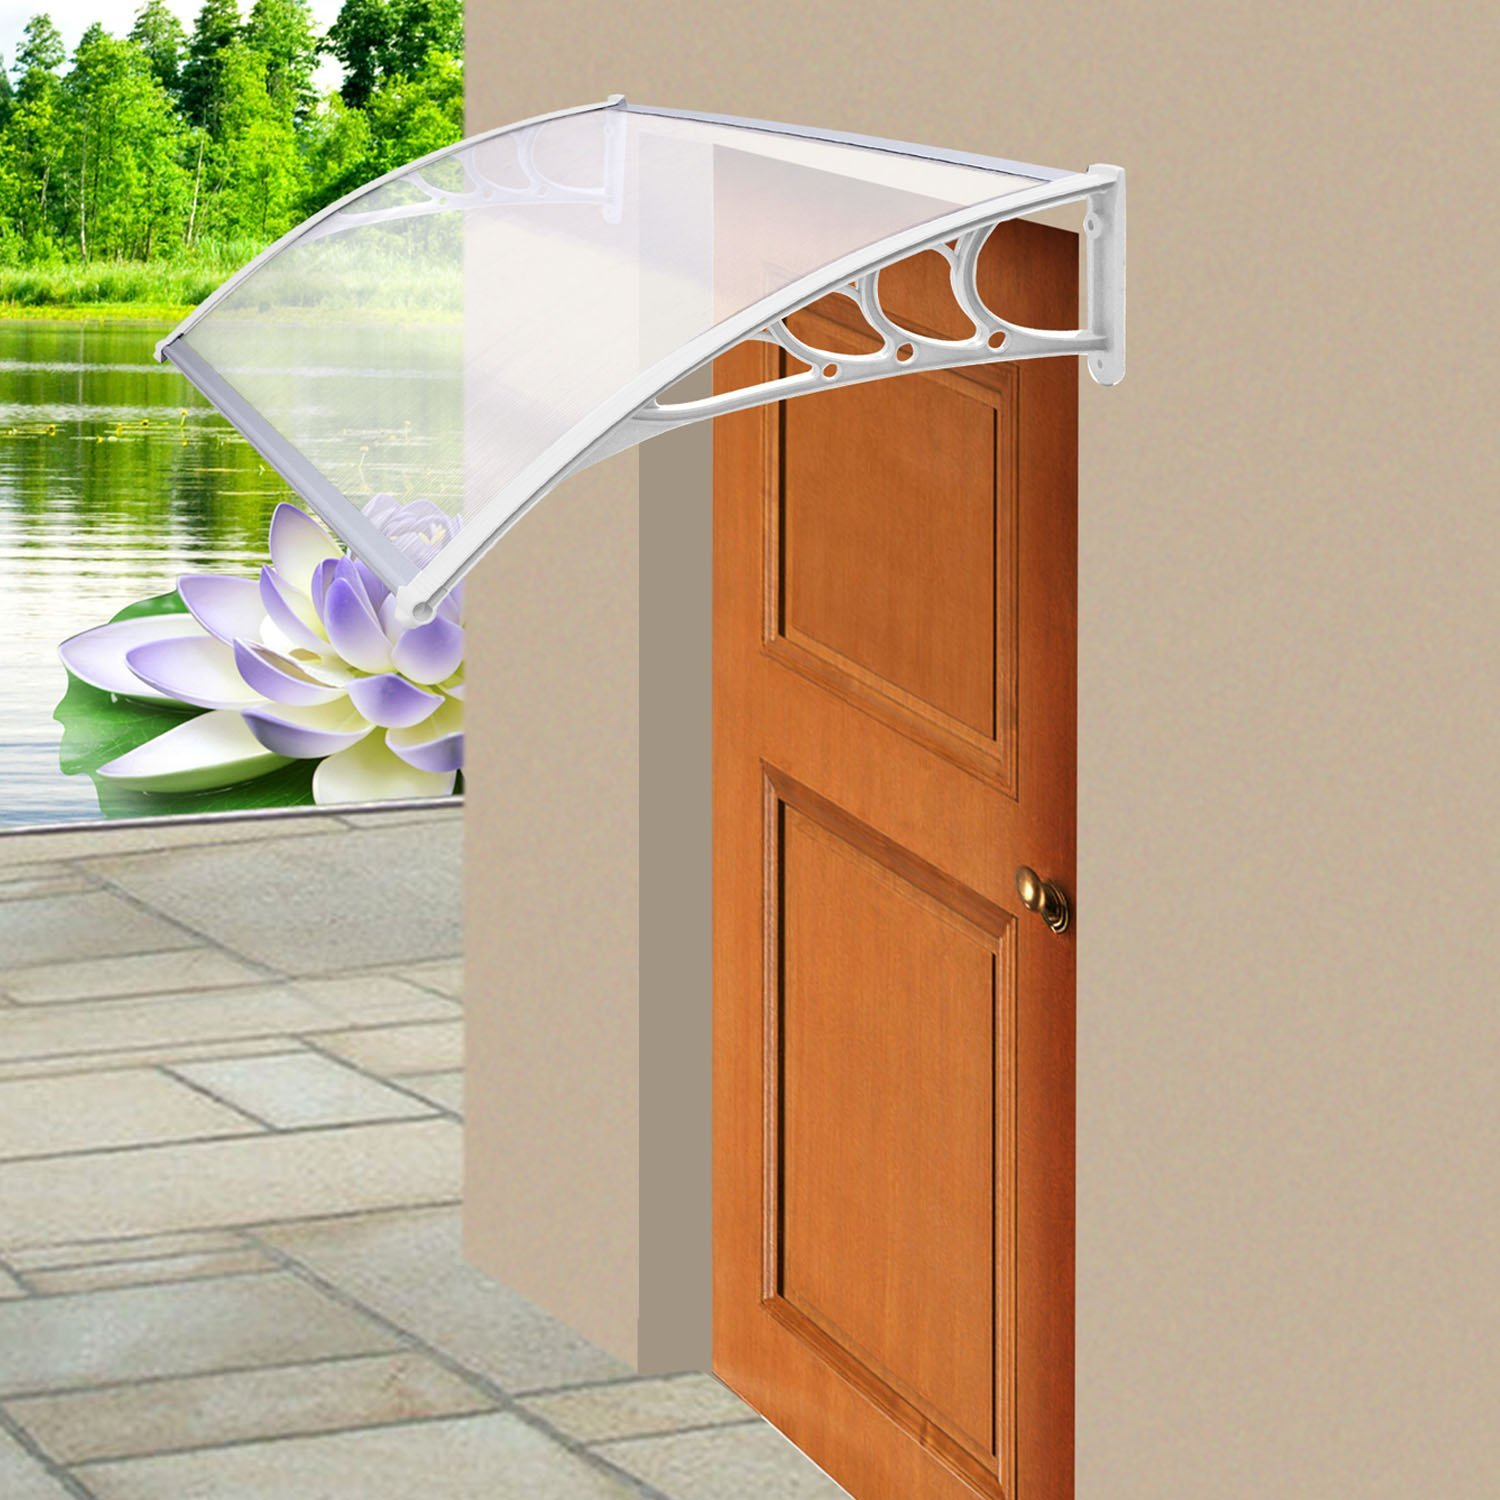 Parkland Door Canopy Awning Shelter Front Back Porch Outdoor Shade Patio  Roof (White): Amazon.co.uk: DIY U0026 Tools